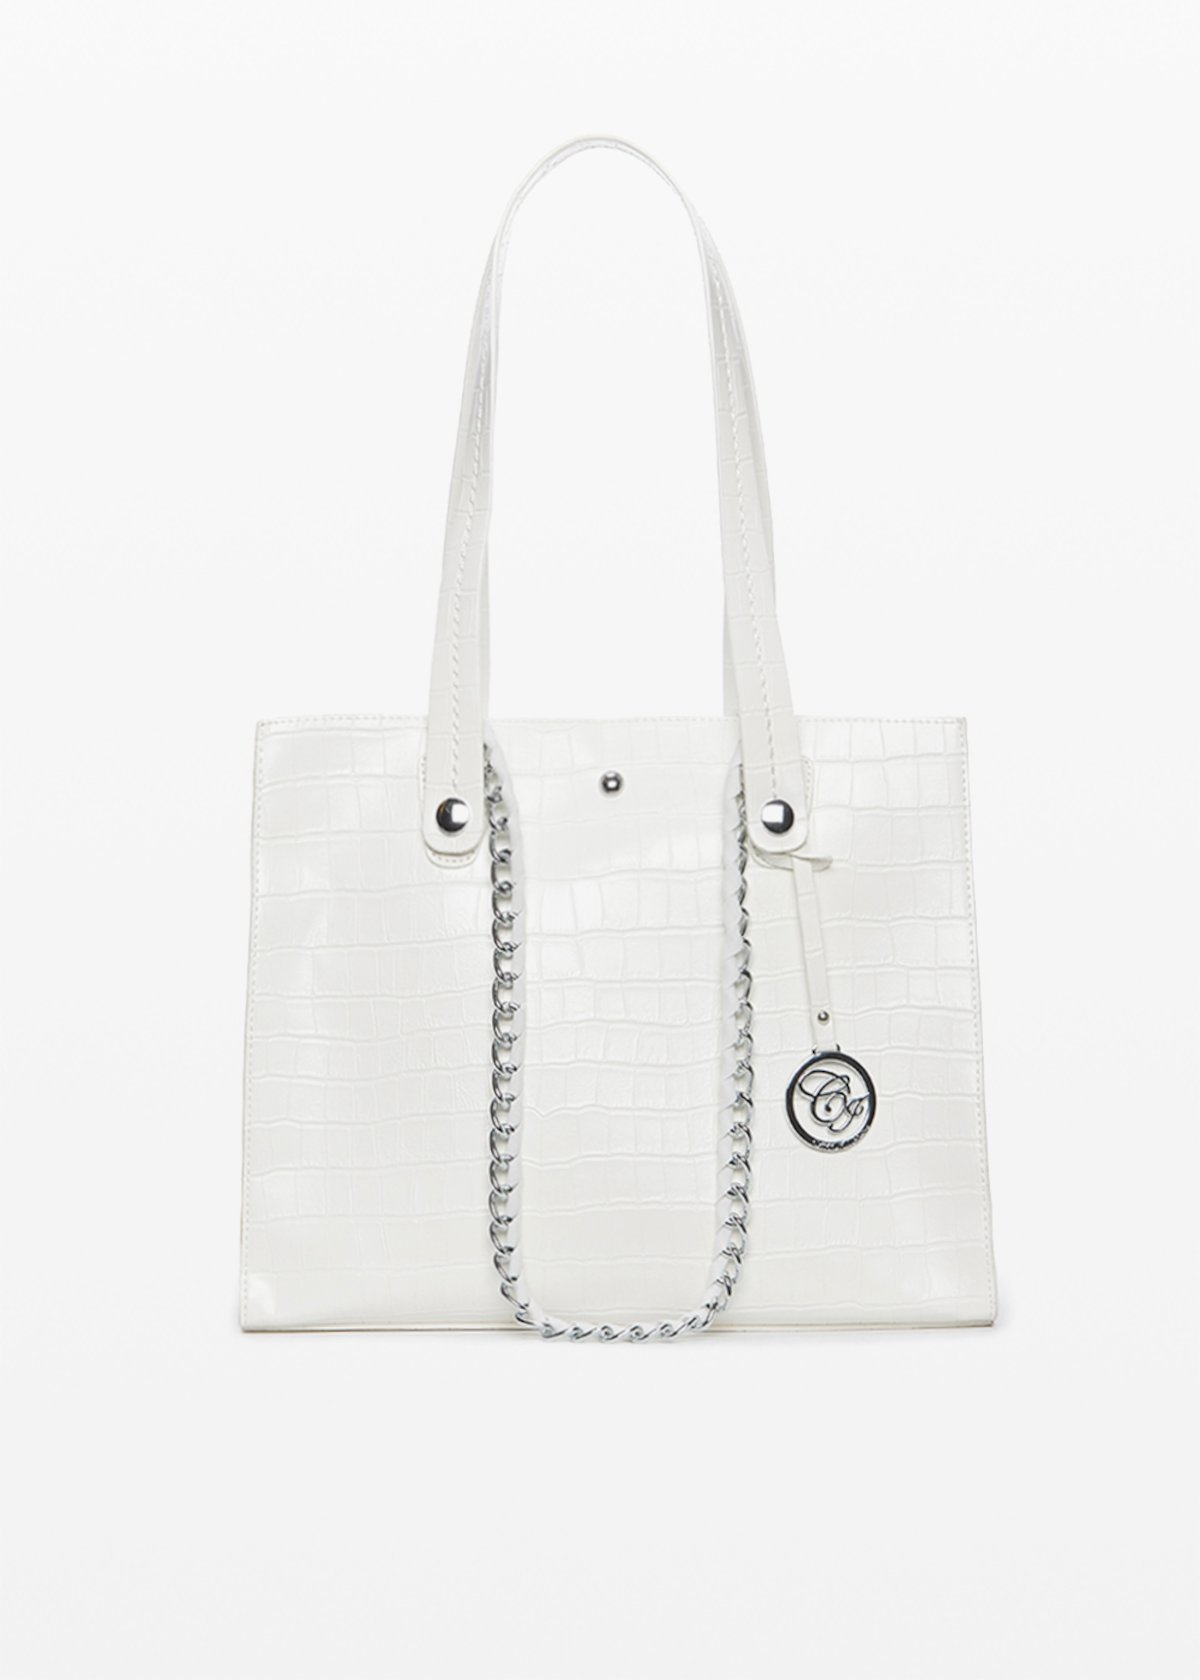 Briant croco bag with double handles - White - Woman